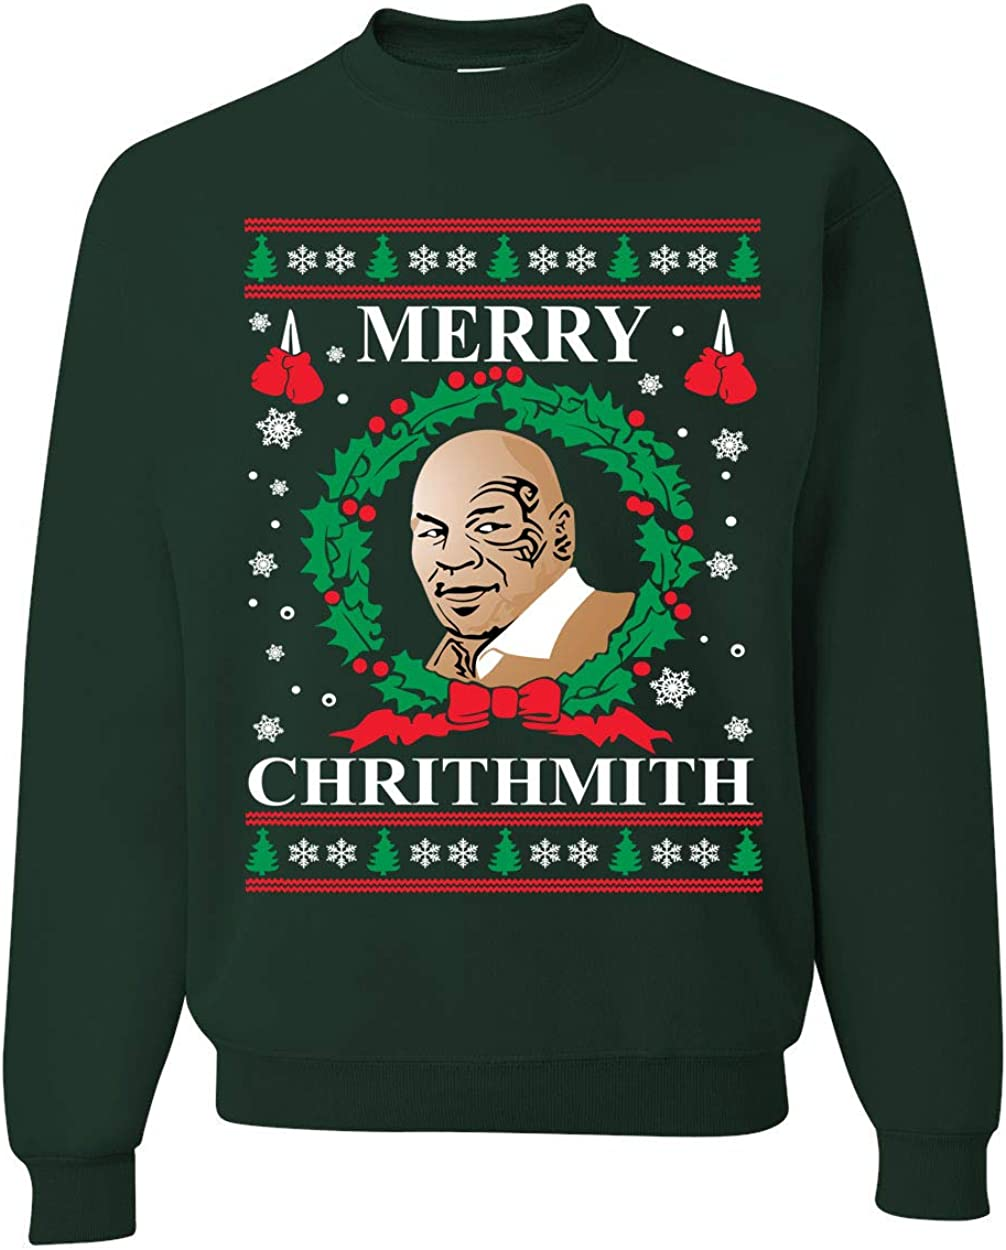 Wild Bobby Merry Chrithmith Mike Tyson Ugly Christmas Sweater Unisex Crewneck Sweatshirt